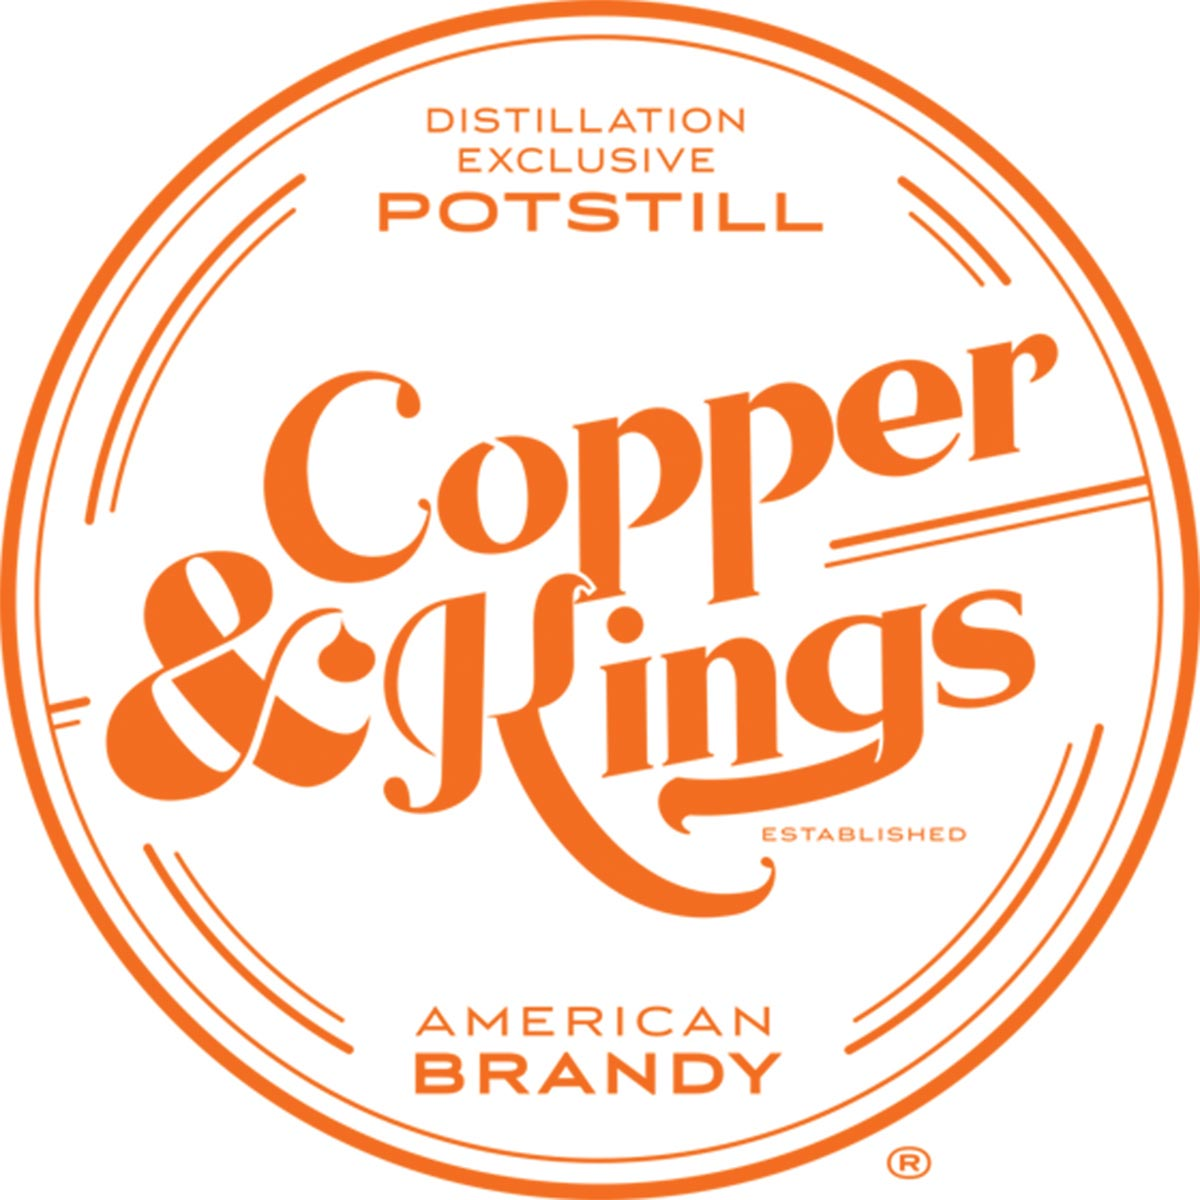 Copper & Kings American Brandy Sells Minority Equity Stake to Constellation